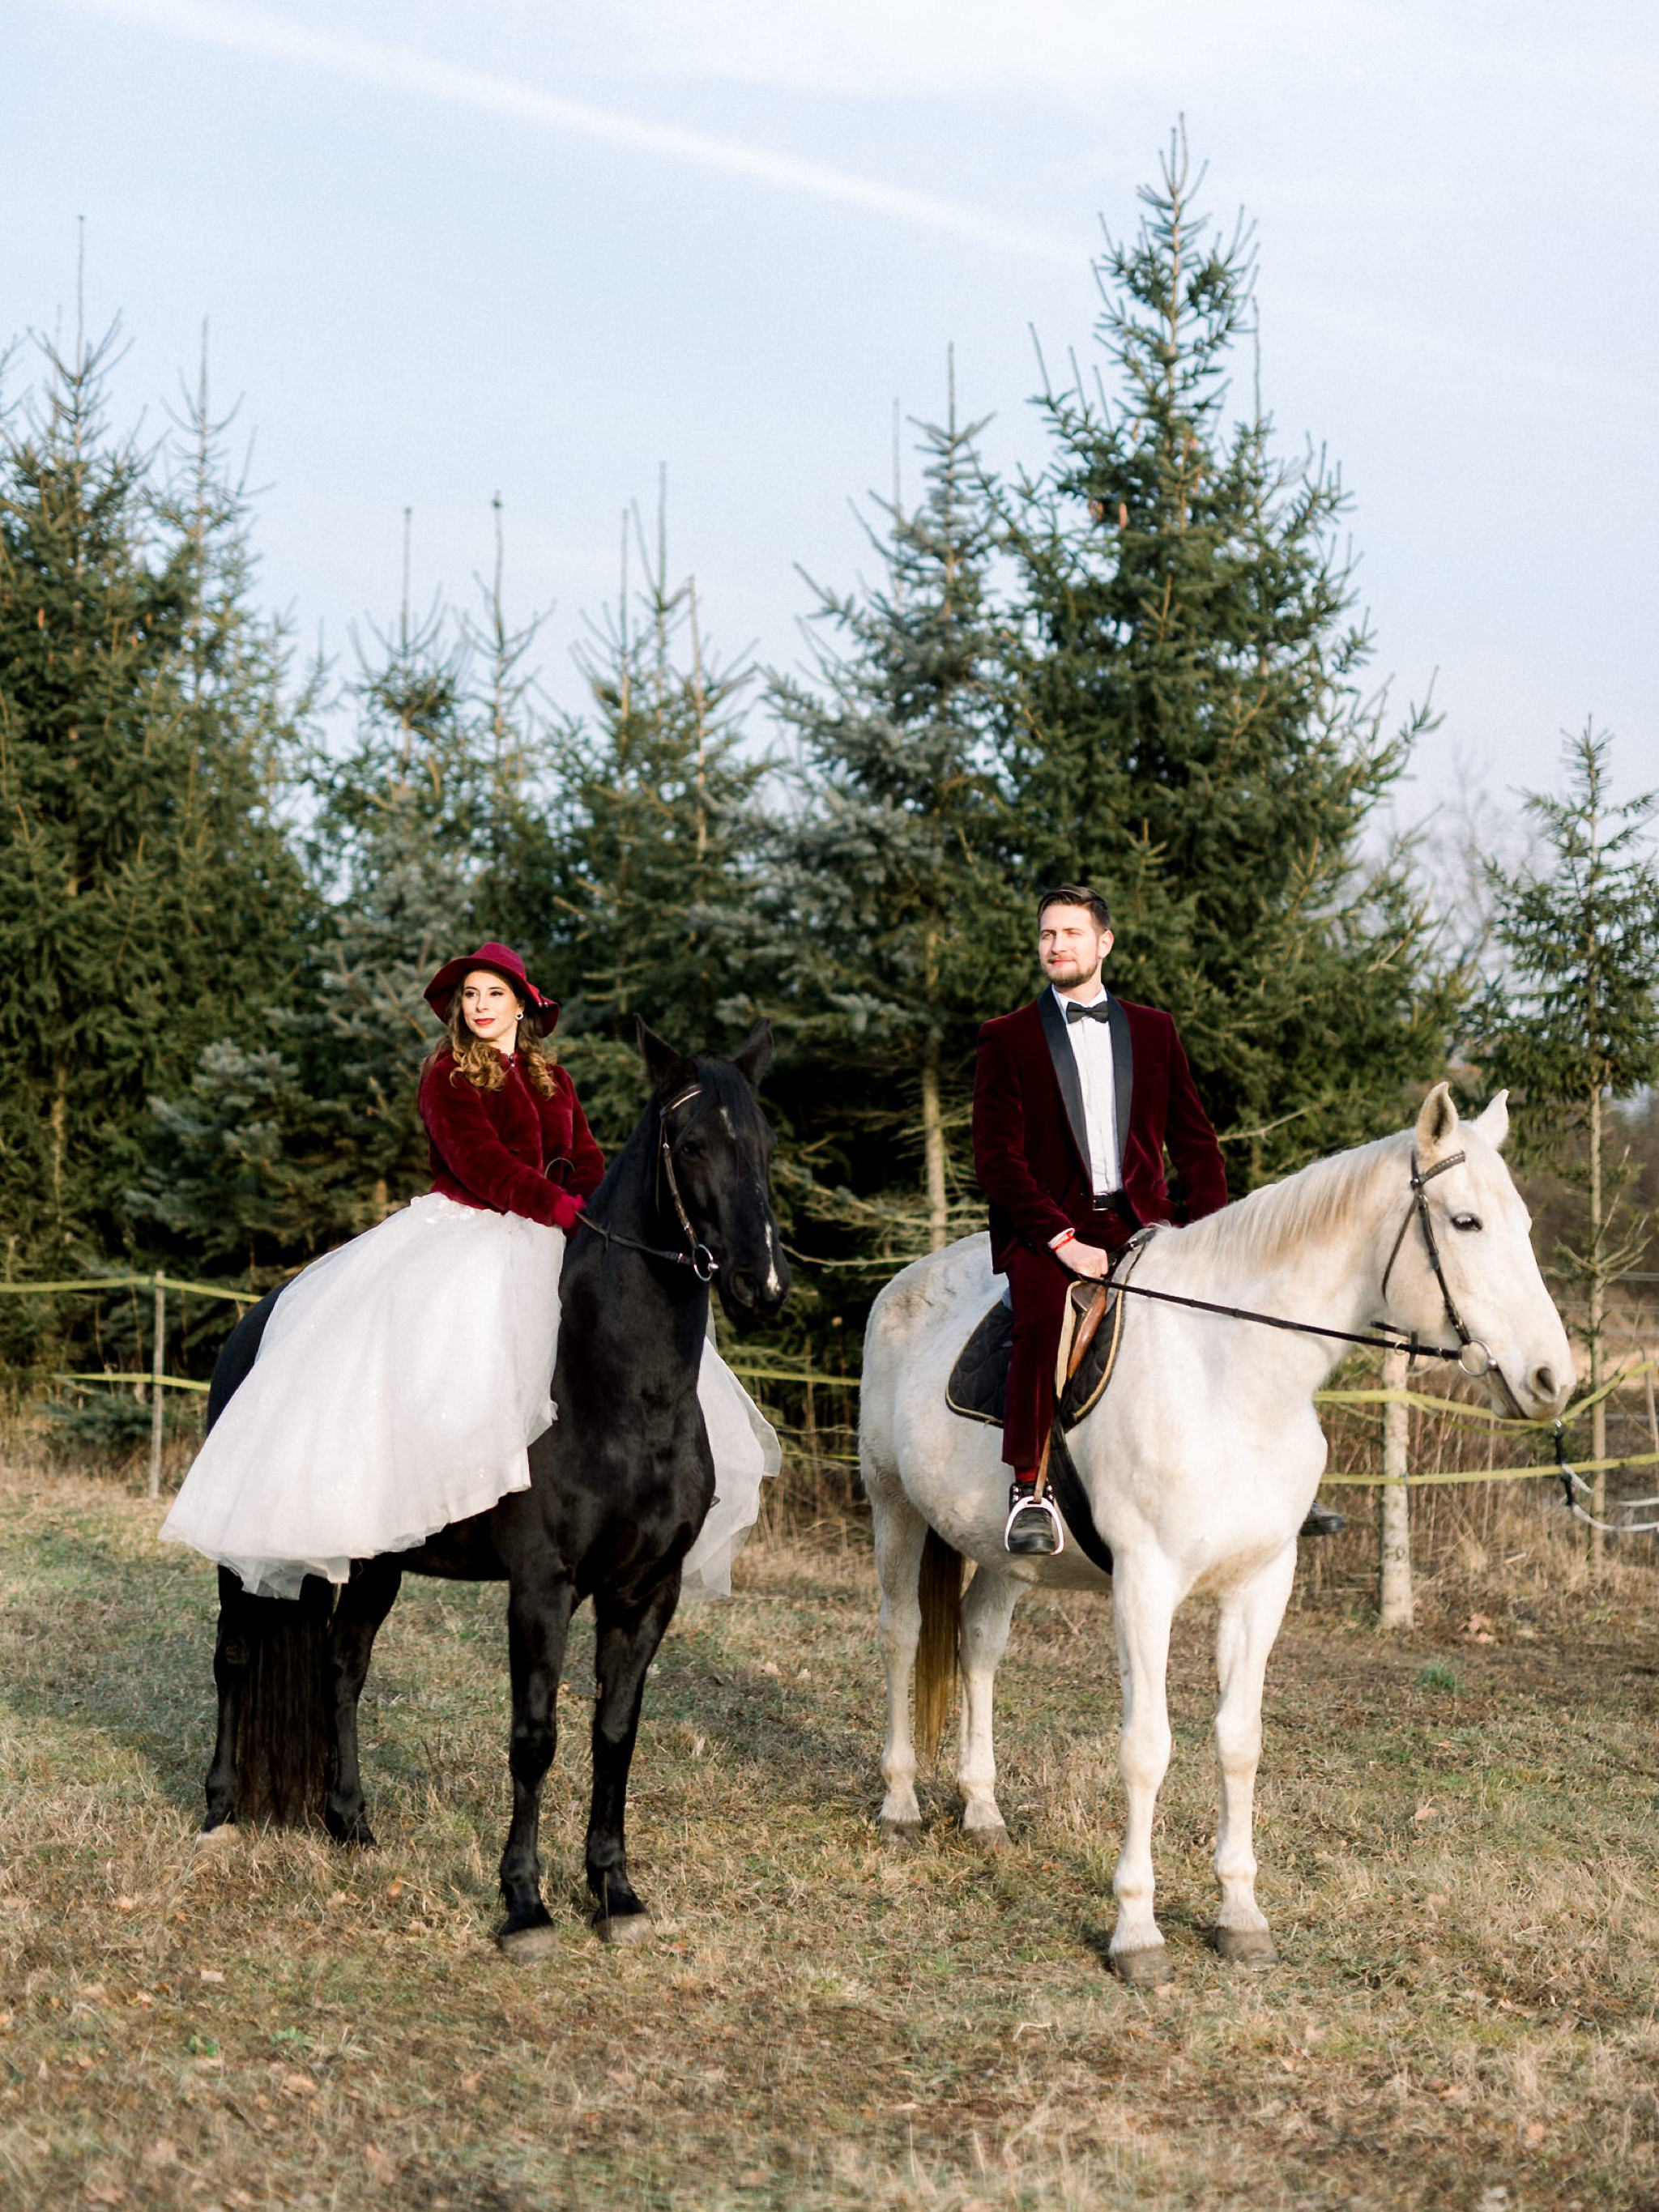 Sweet Winter Horseback Wedding Photoshoot 12